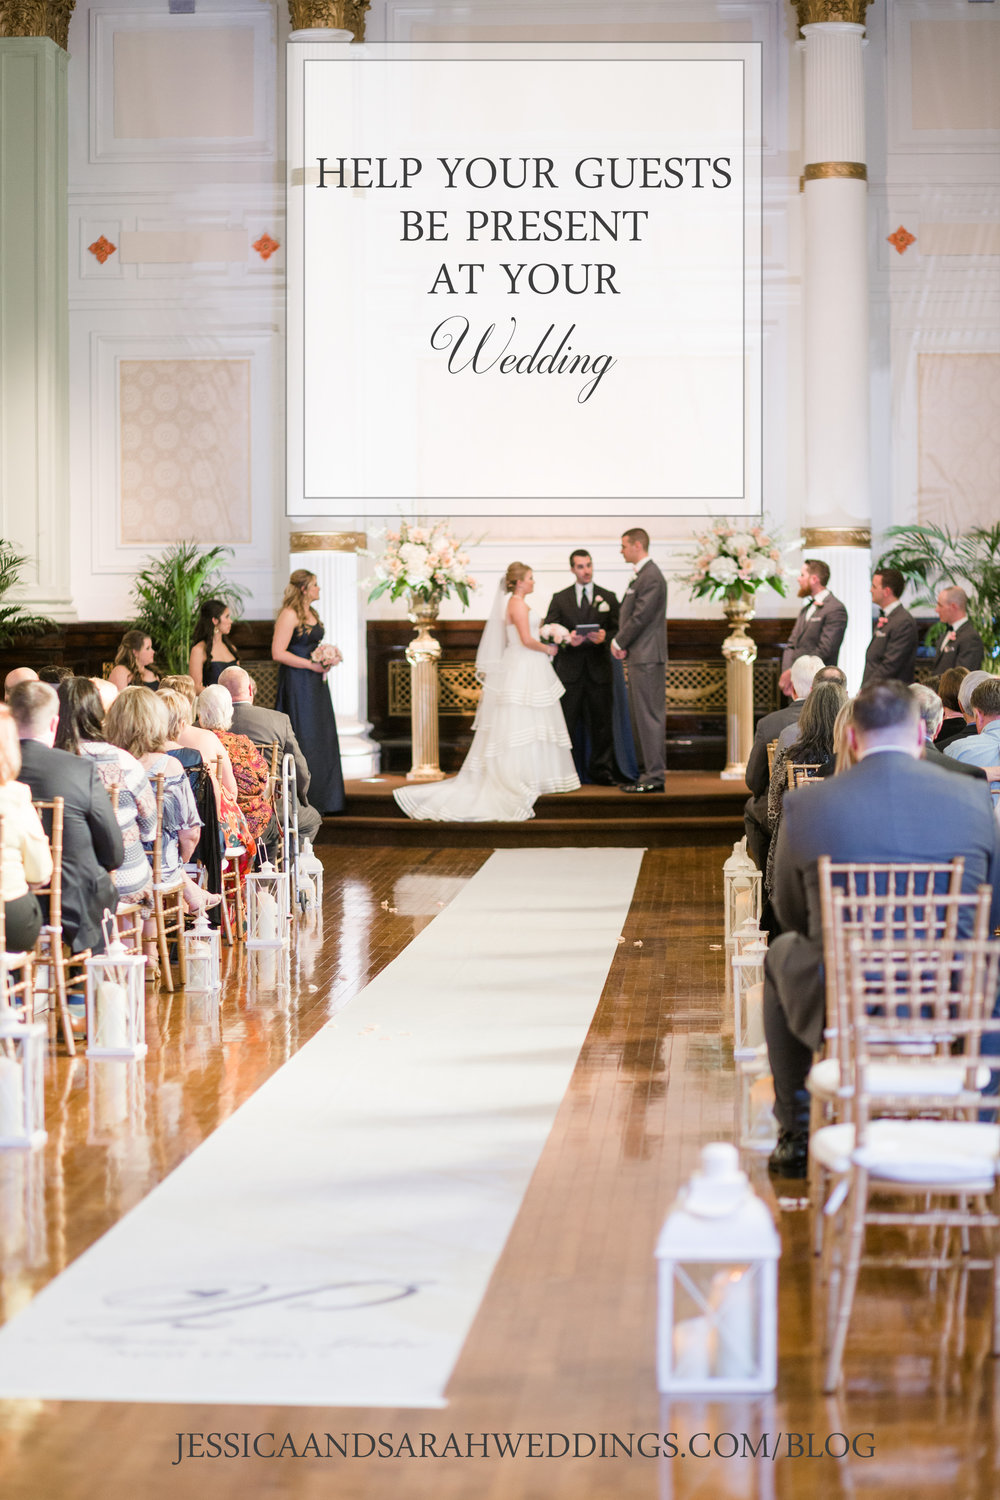 help-your-guests-be-present-at-your-wedding.jpg